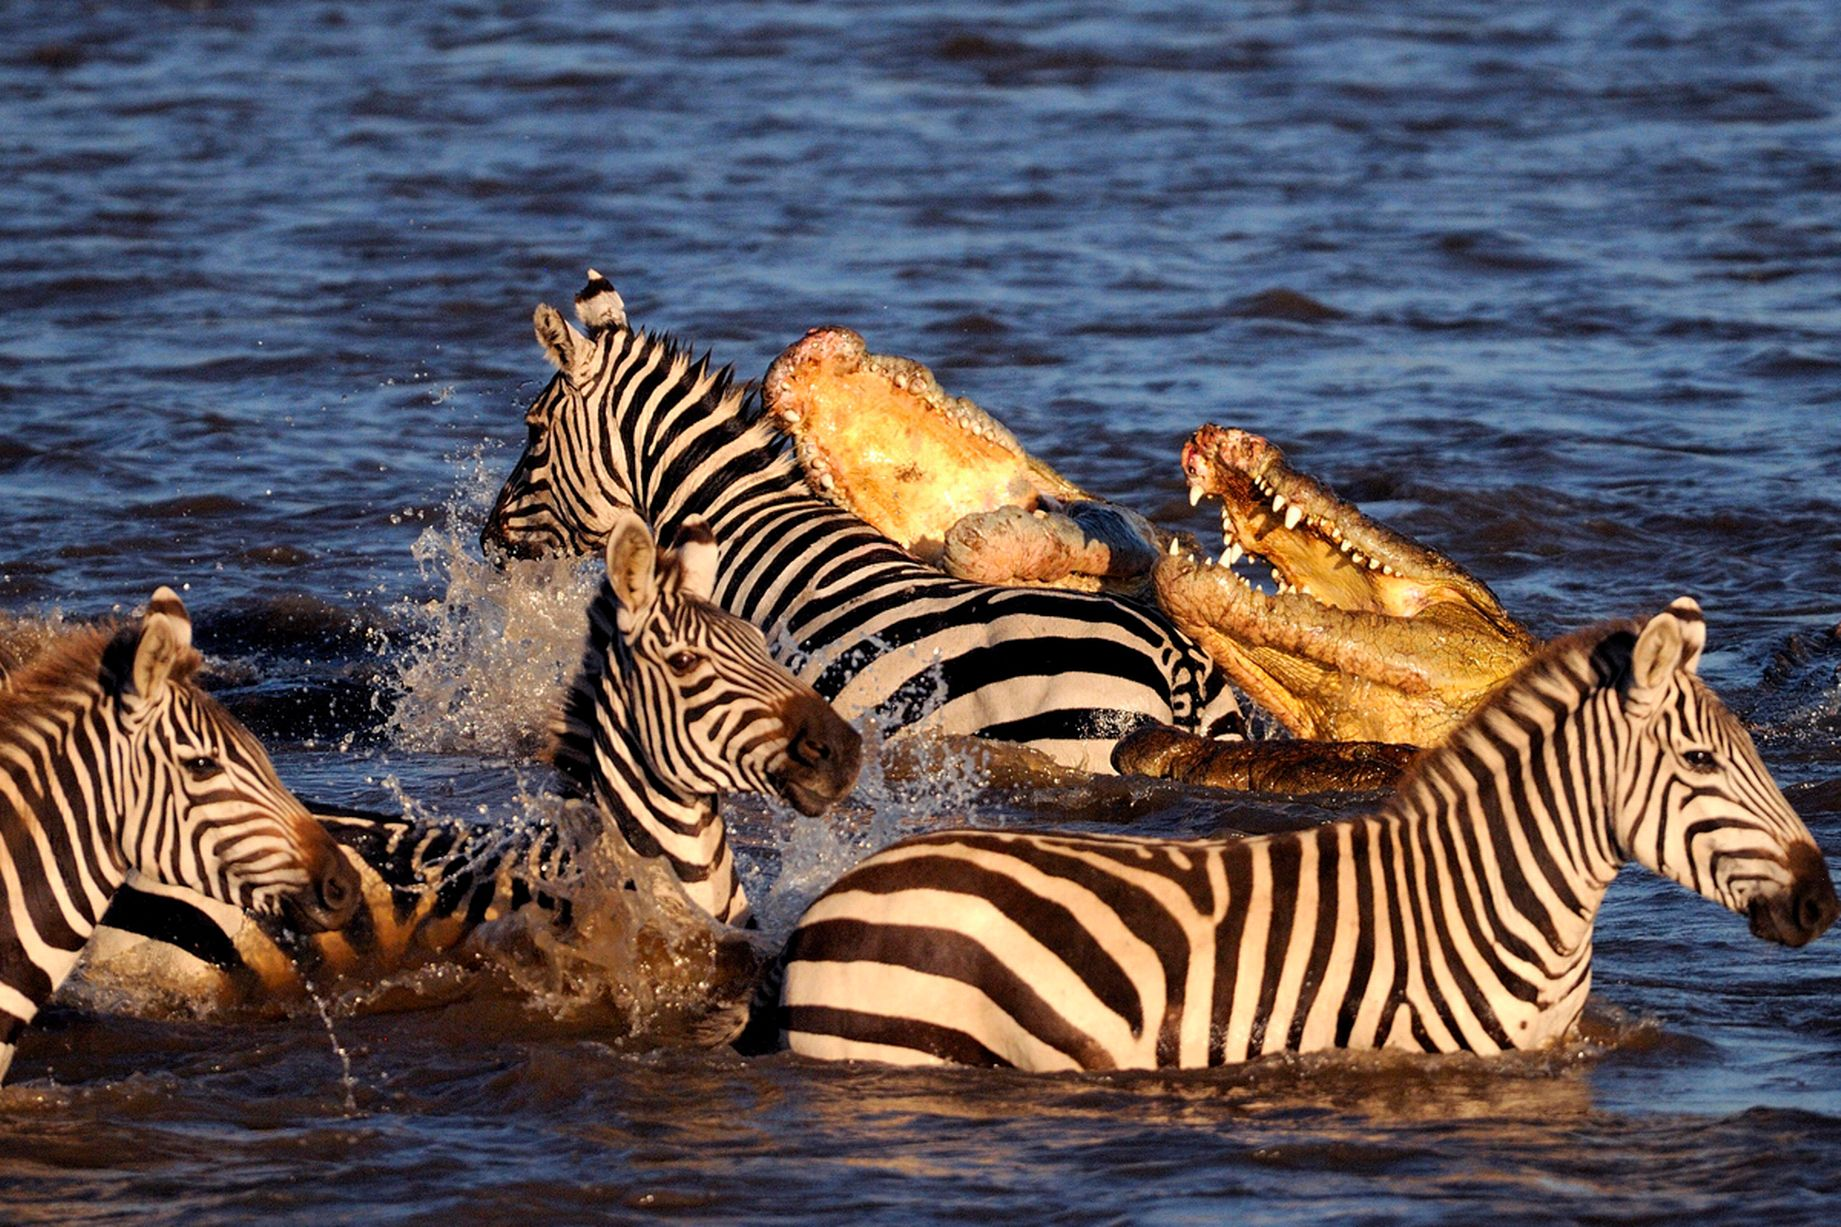 6crocodile-Maasai-Mara-Kenya-on-August-23-2015